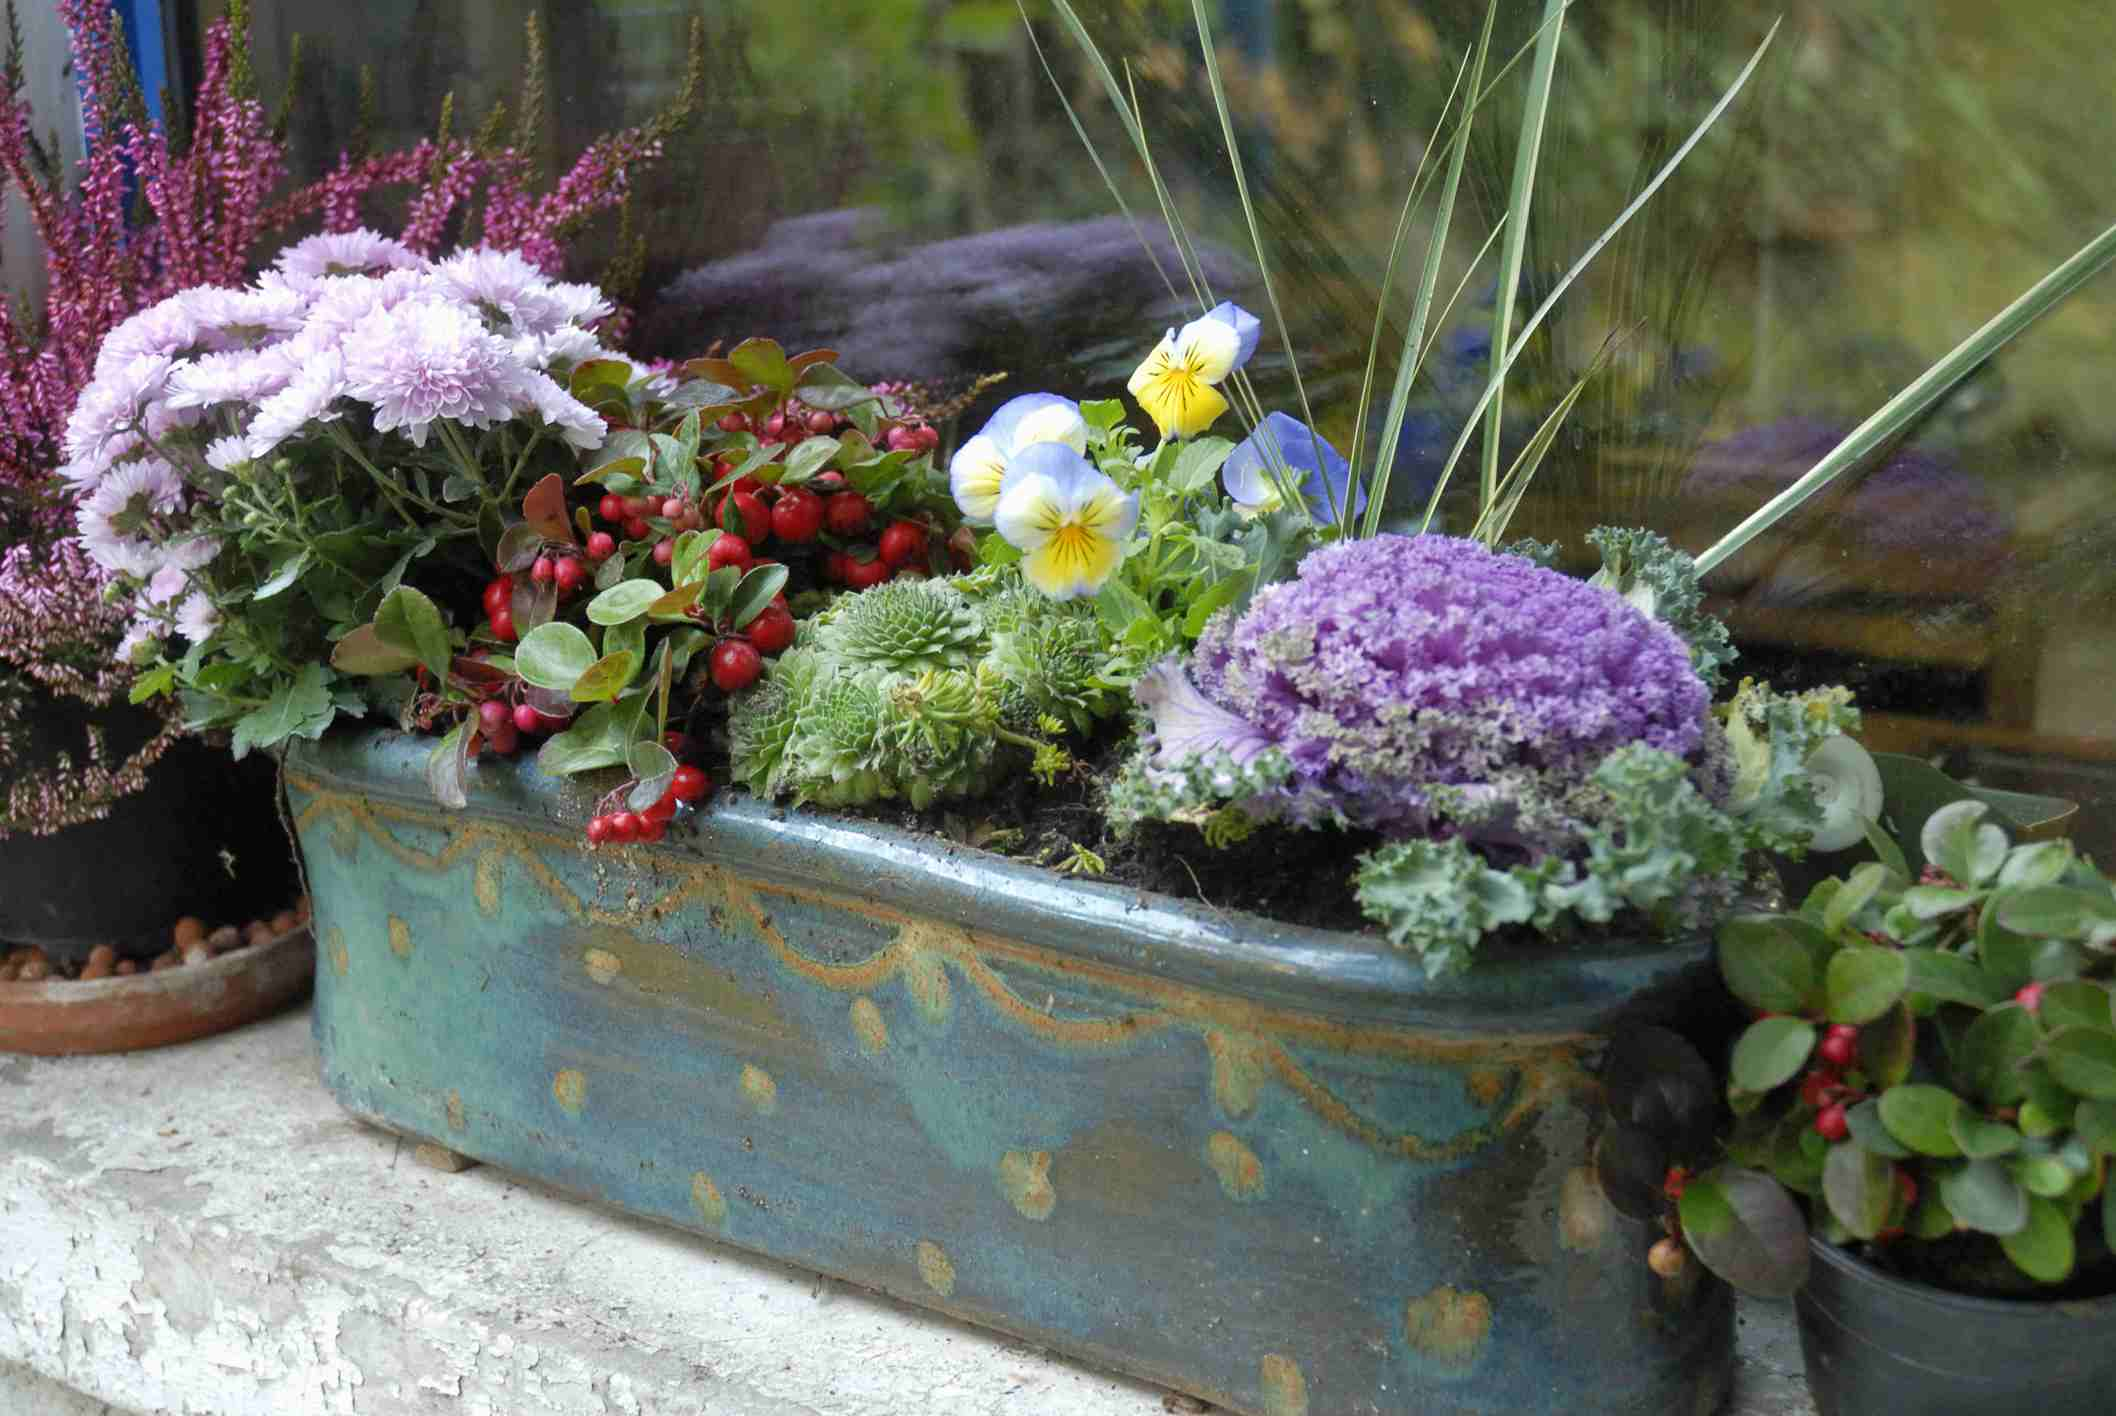 Ornamental cabbage in a container with chrysanthemum and other flowers